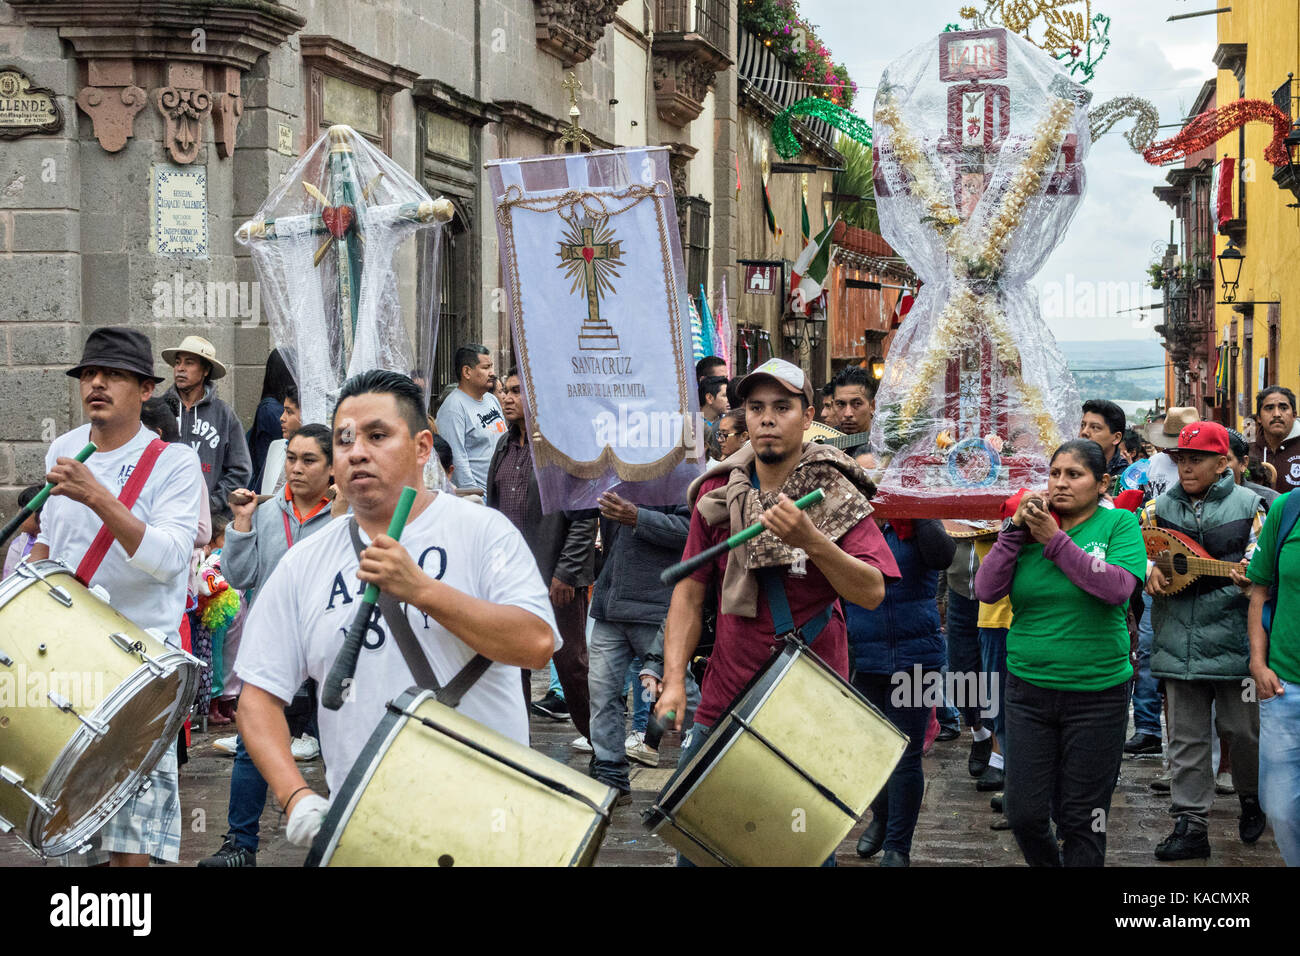 Residents carry crosses and religious icons in a procession through the Jardin Allende during the week long fiesta - Stock Image